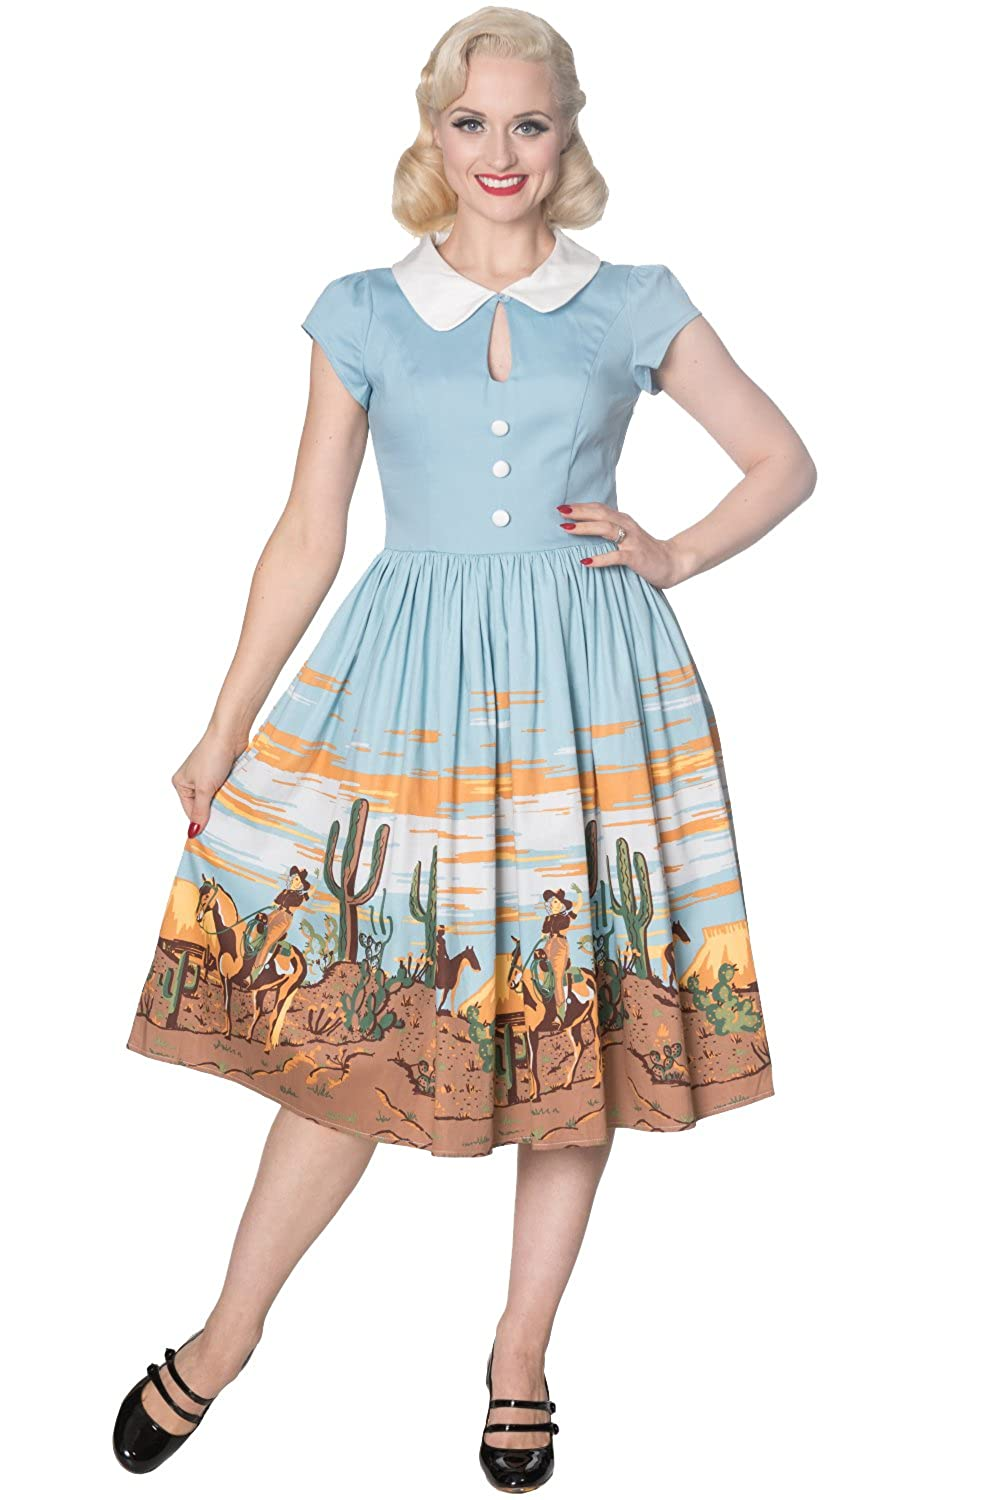 What Did Women Wear in the 1950s? Banned Magical Day Retro Fifties Shirtwaist Dress $62.95 AT vintagedancer.com